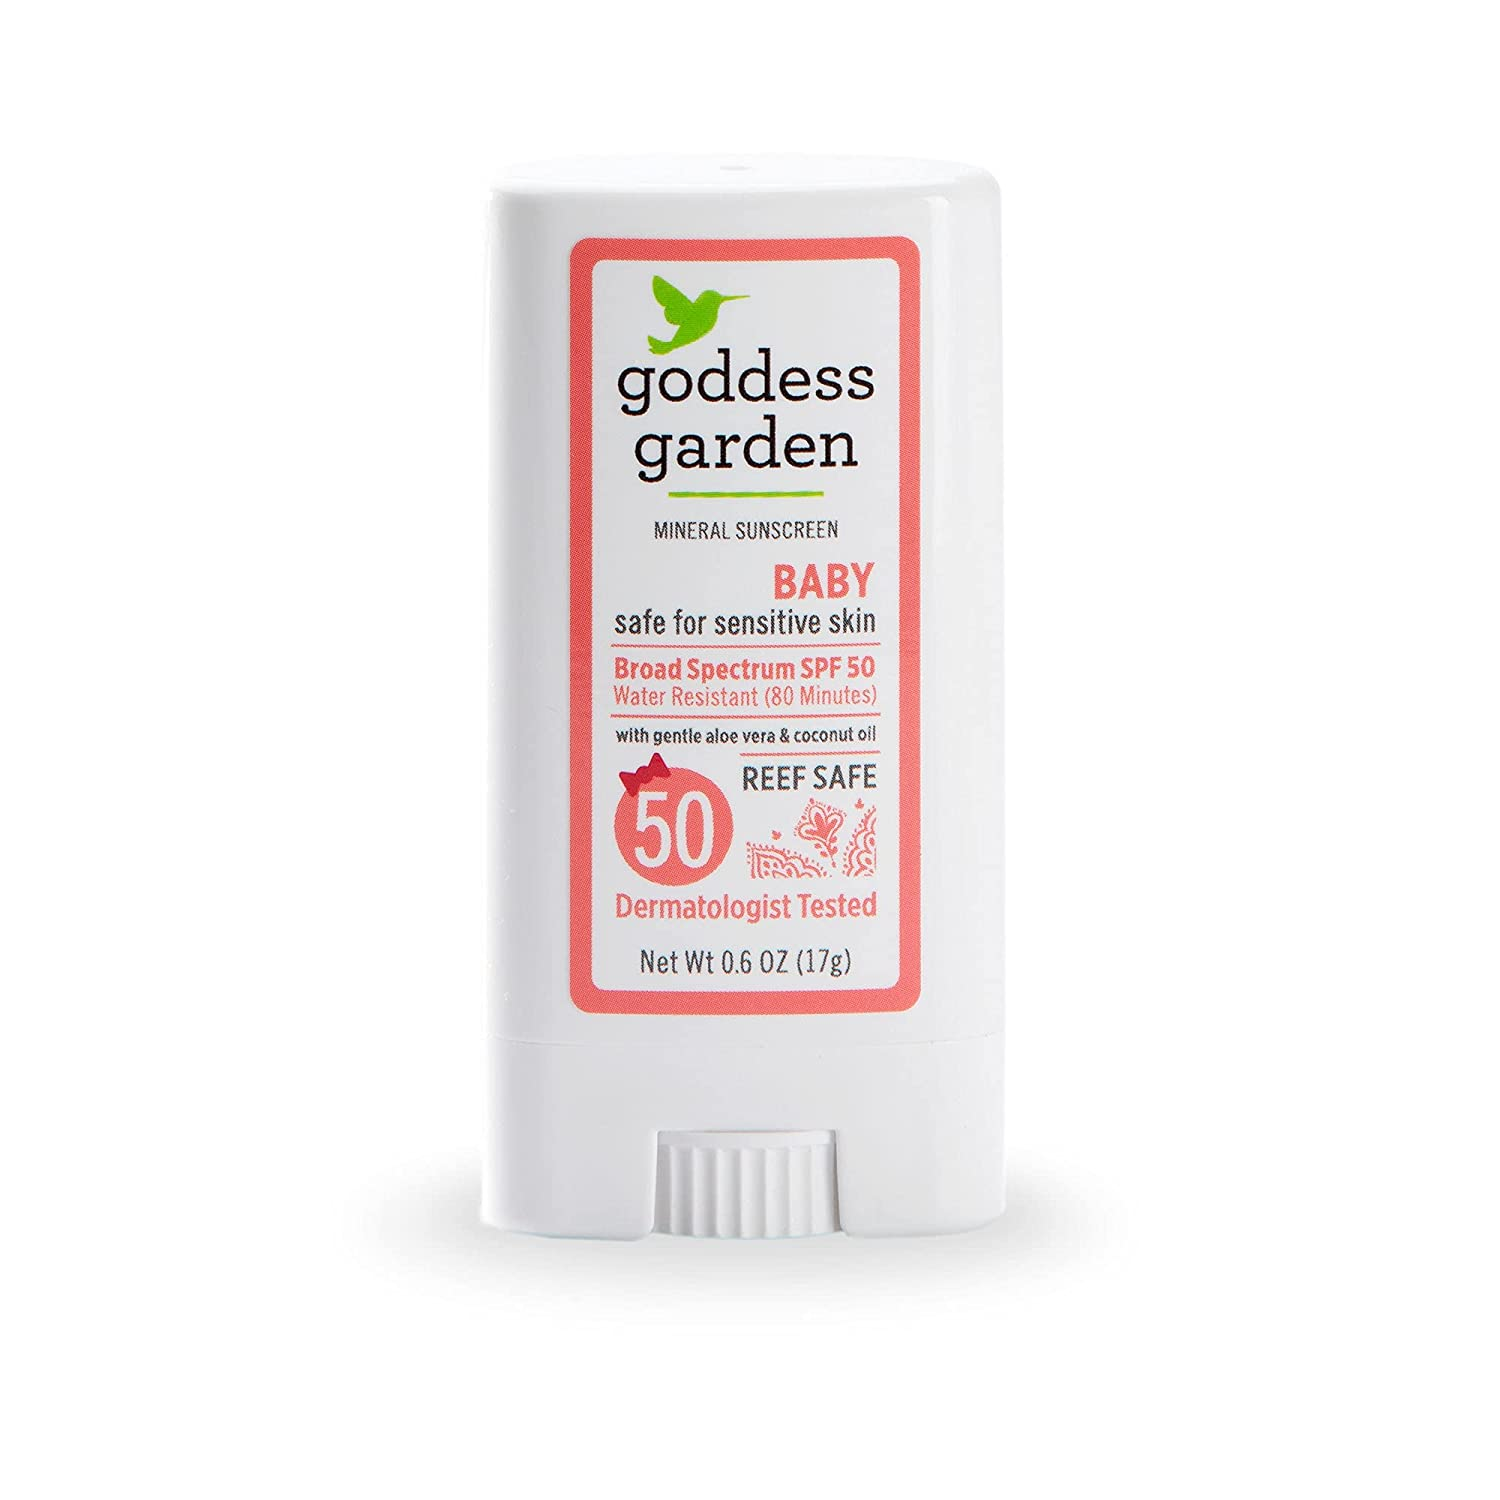 Goddess Garden - Baby SPF 50 1 Max 47% OFF Sunscreen Unit Stick Mineral Al sold out.